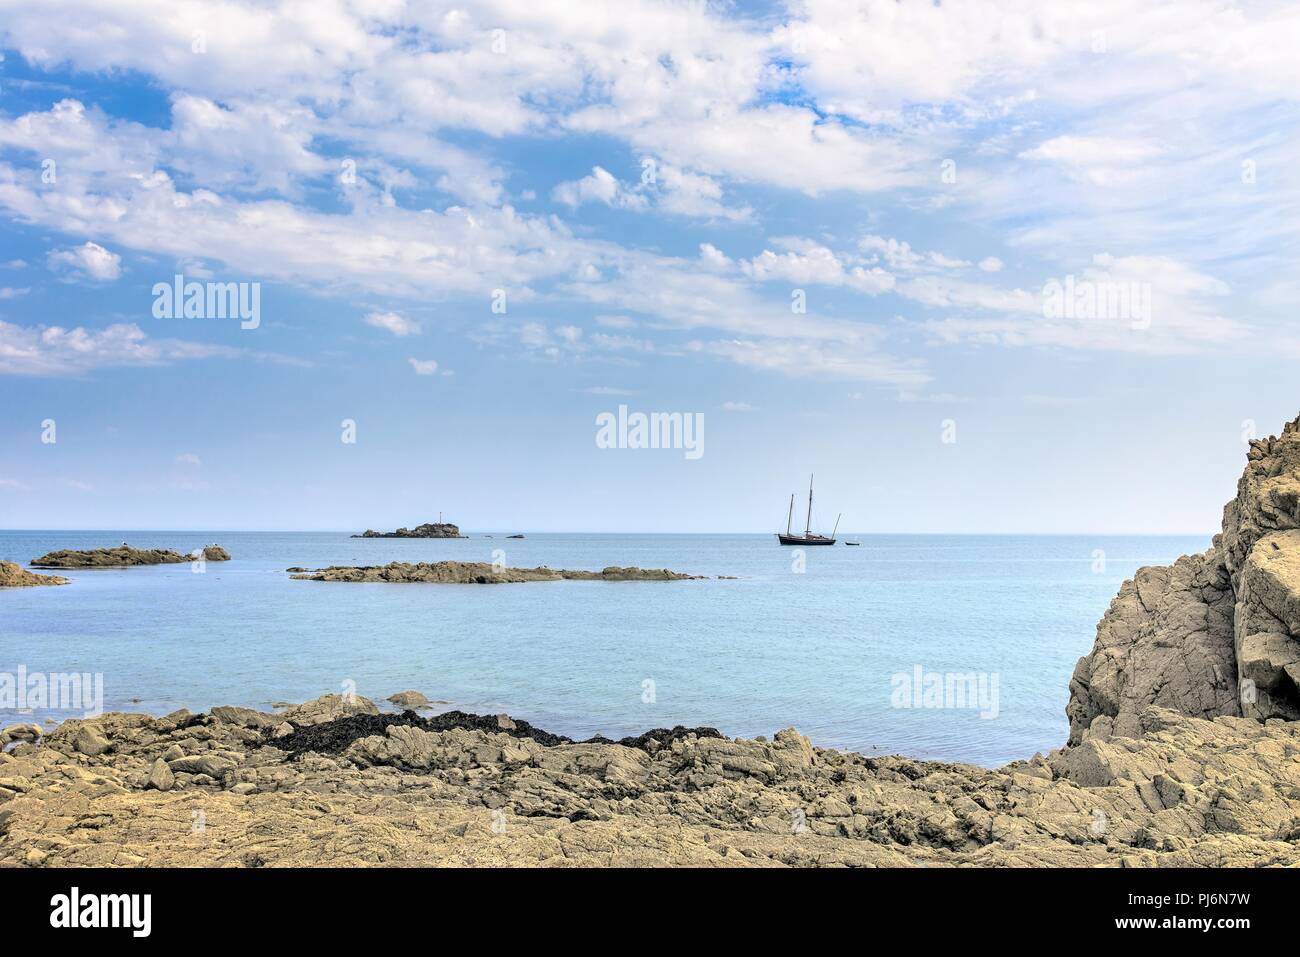 Rocky shoreline at Gorey, Jersey.  A masted boat is moored off shore and a blue, cloud filled sky is above. Stock Photo